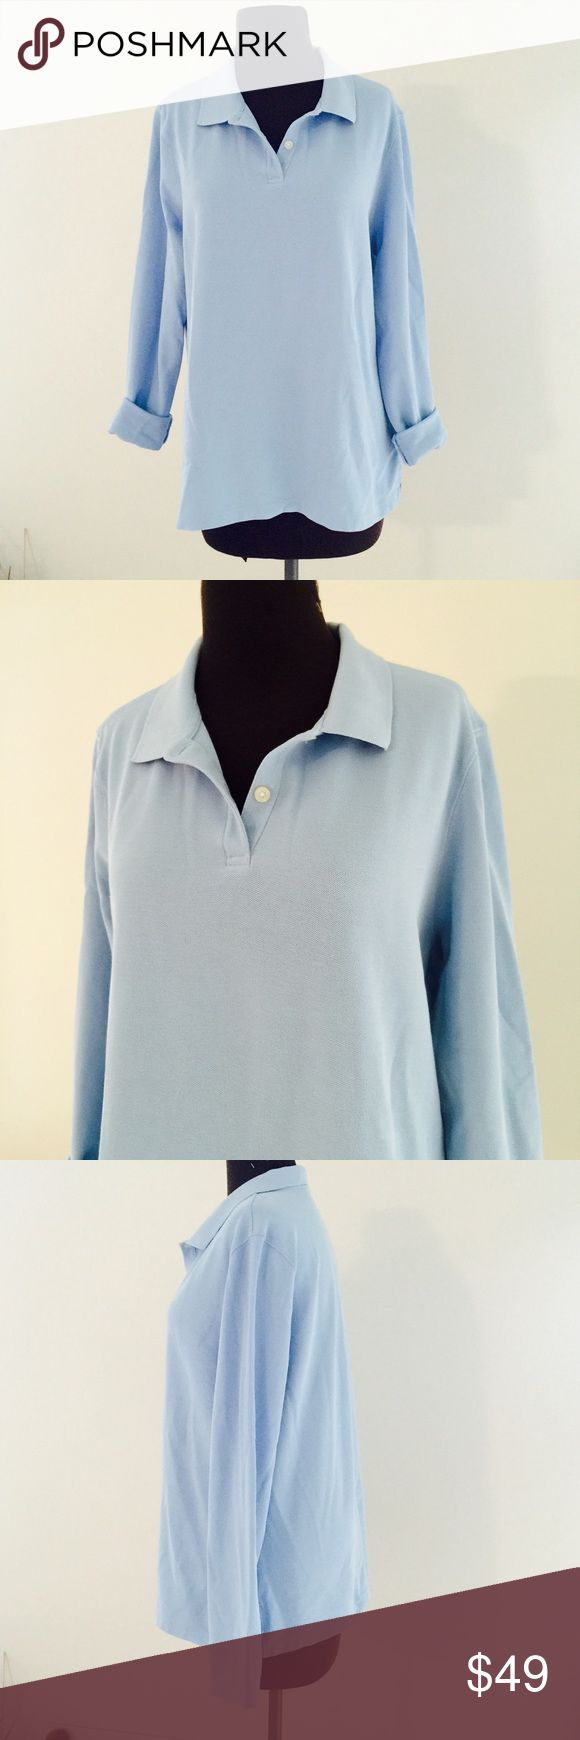 ❗️LL Bean Women Sky Blue Long Sleeve Polo MSRP $89 ❗️LL Bean Sky Blue Women's Long Sleeve Polo. Size XL. Retails $89. In great condition! Make an offer! I consider all reasonable offers on items & give great bundle deals! Winter cleanout sale ;-) L.L. Bean Tops